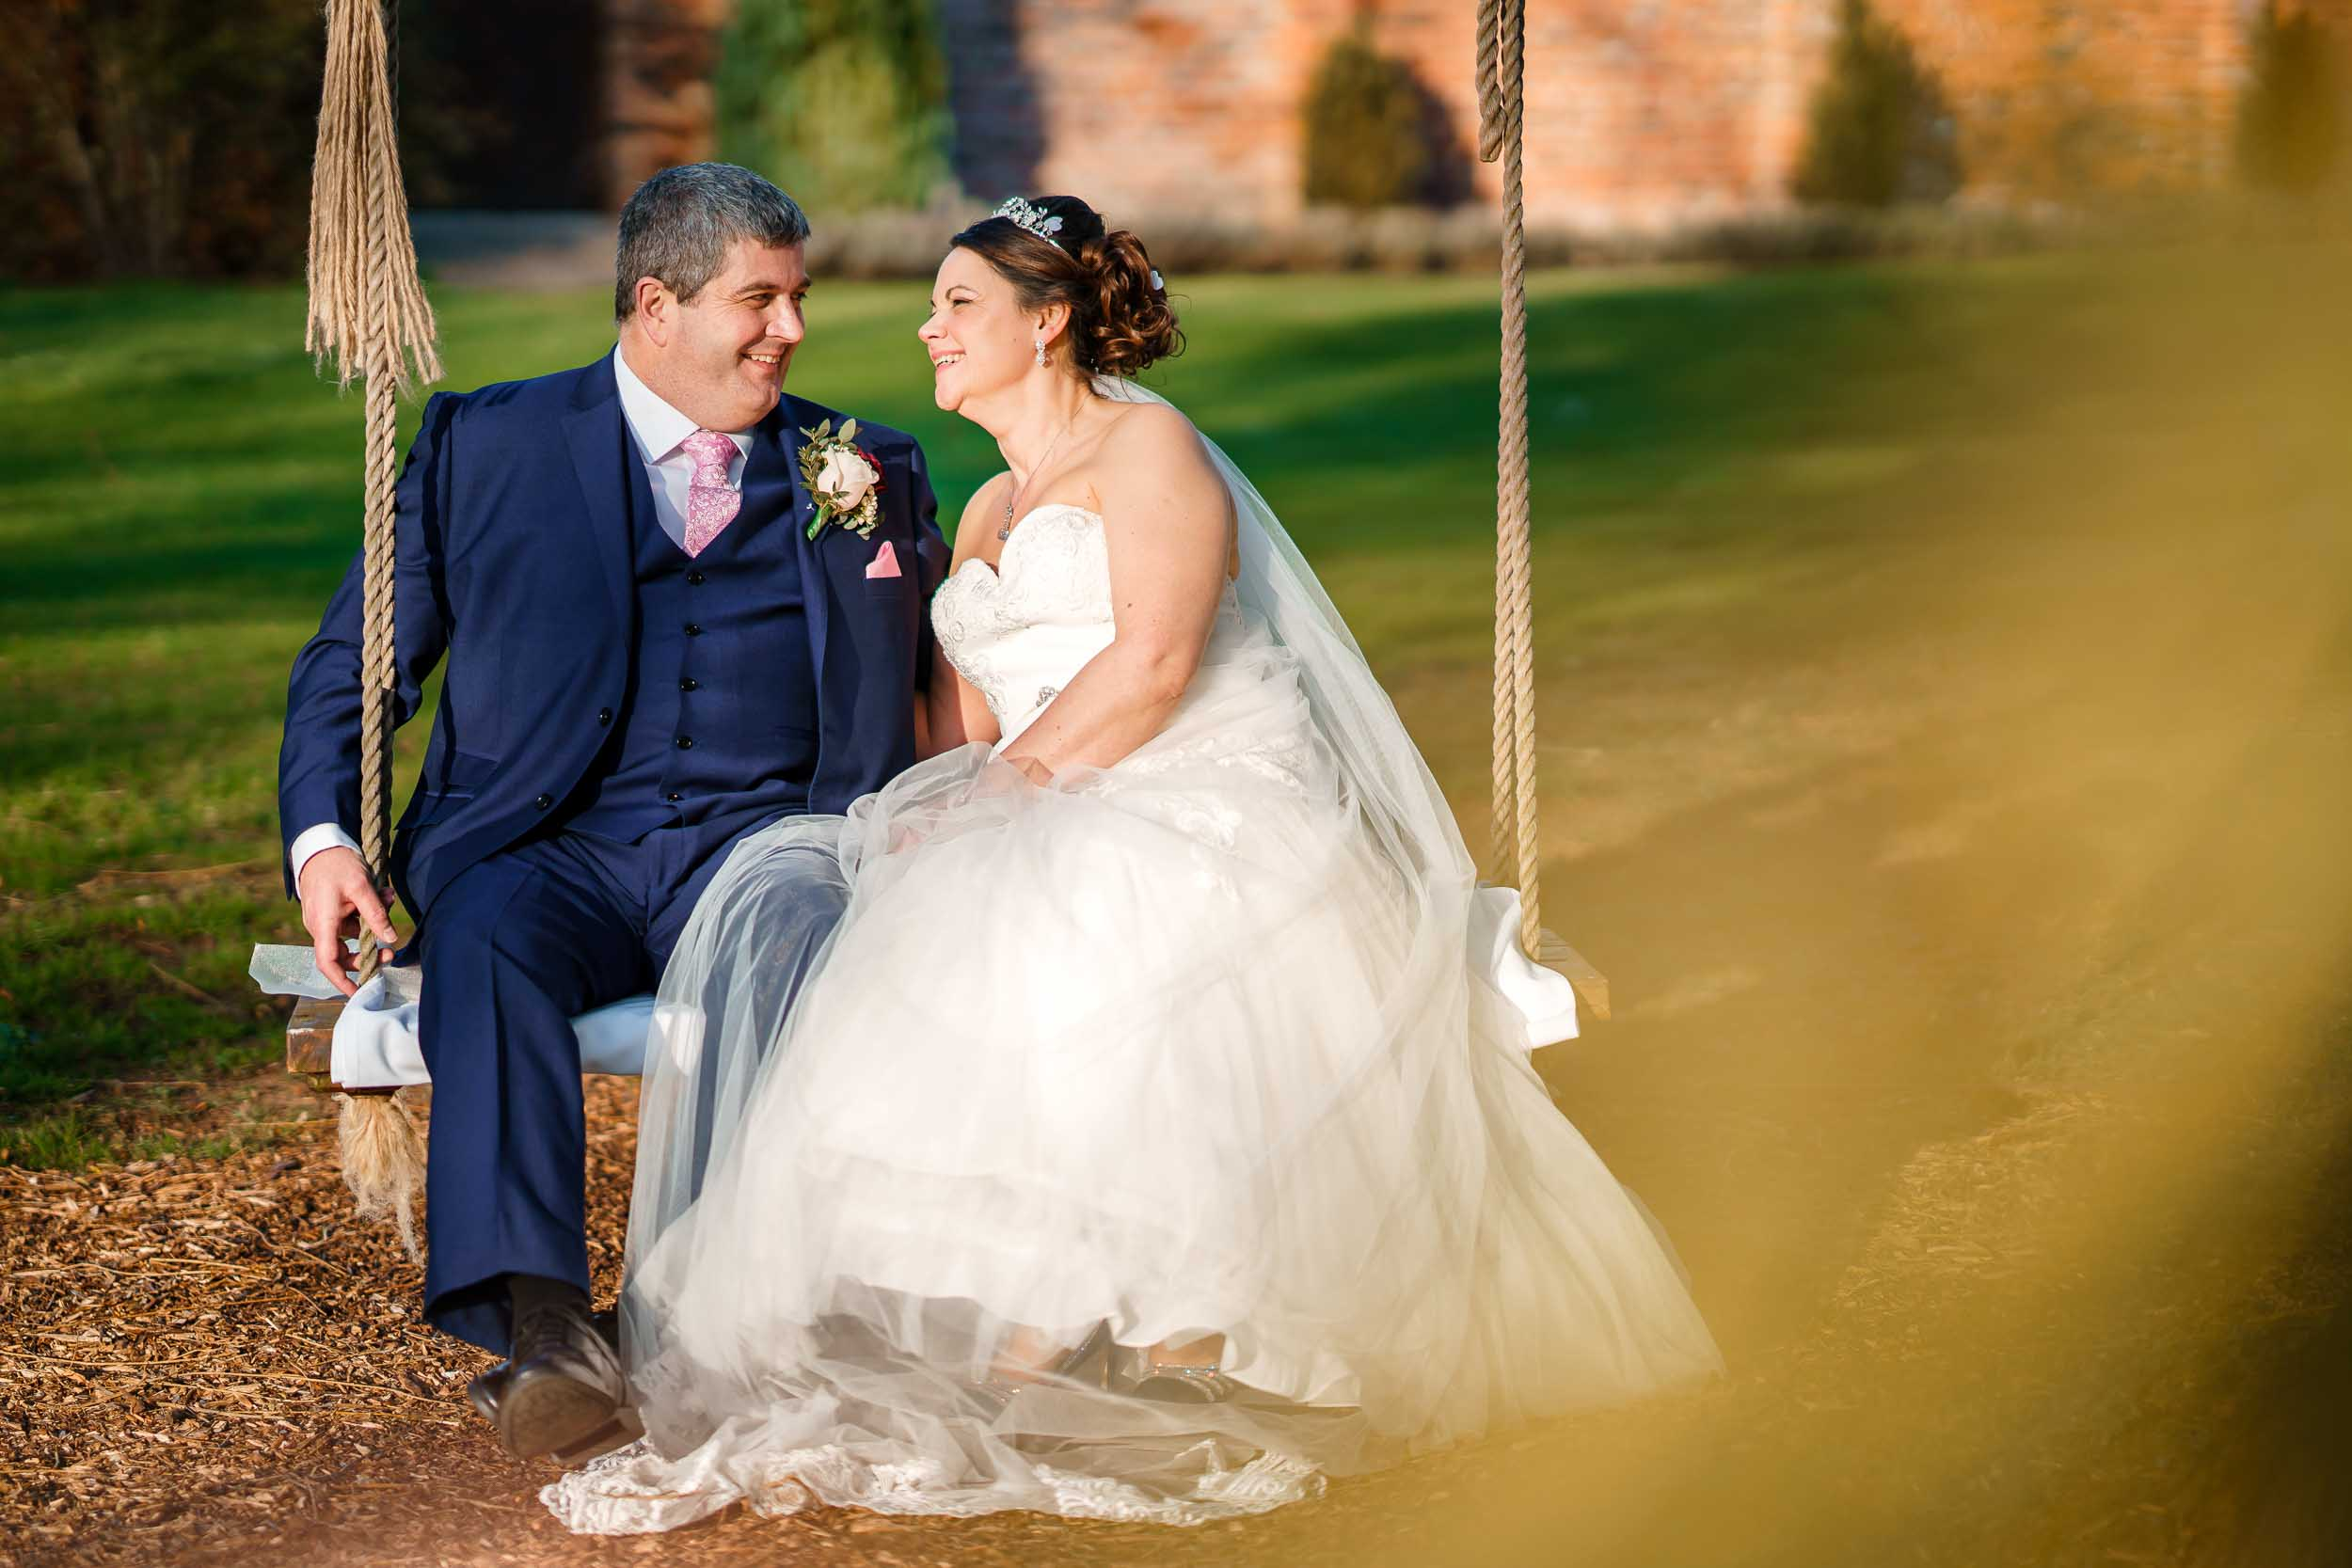 Stanbrook Abbey Bride and Groom Portraits- David Liebst Photography, Worcestershire